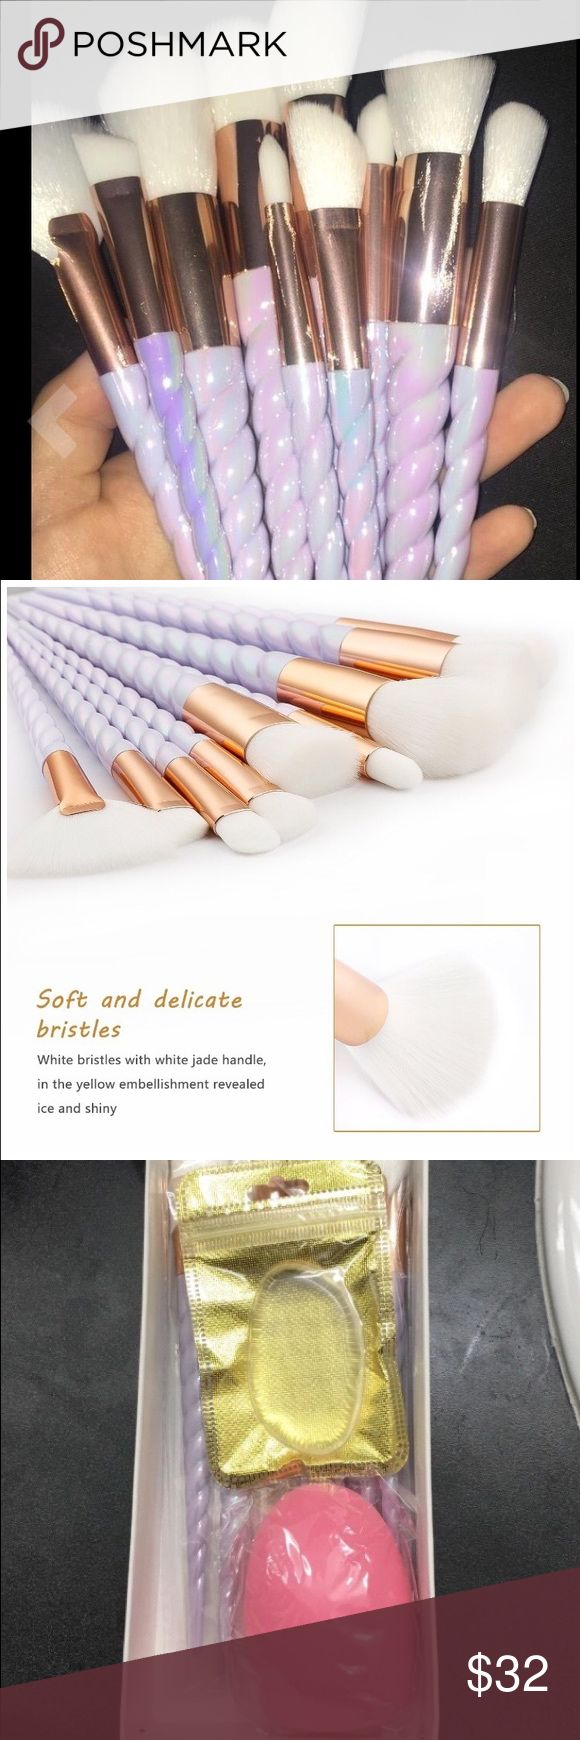 10 Unicorn brushes with silisponge and brush egg 10 Soft brushes with one silisponge and brush egg ! Perfect for all occasions👍🏼 brand new 💕 Makeup Brushes & Tools